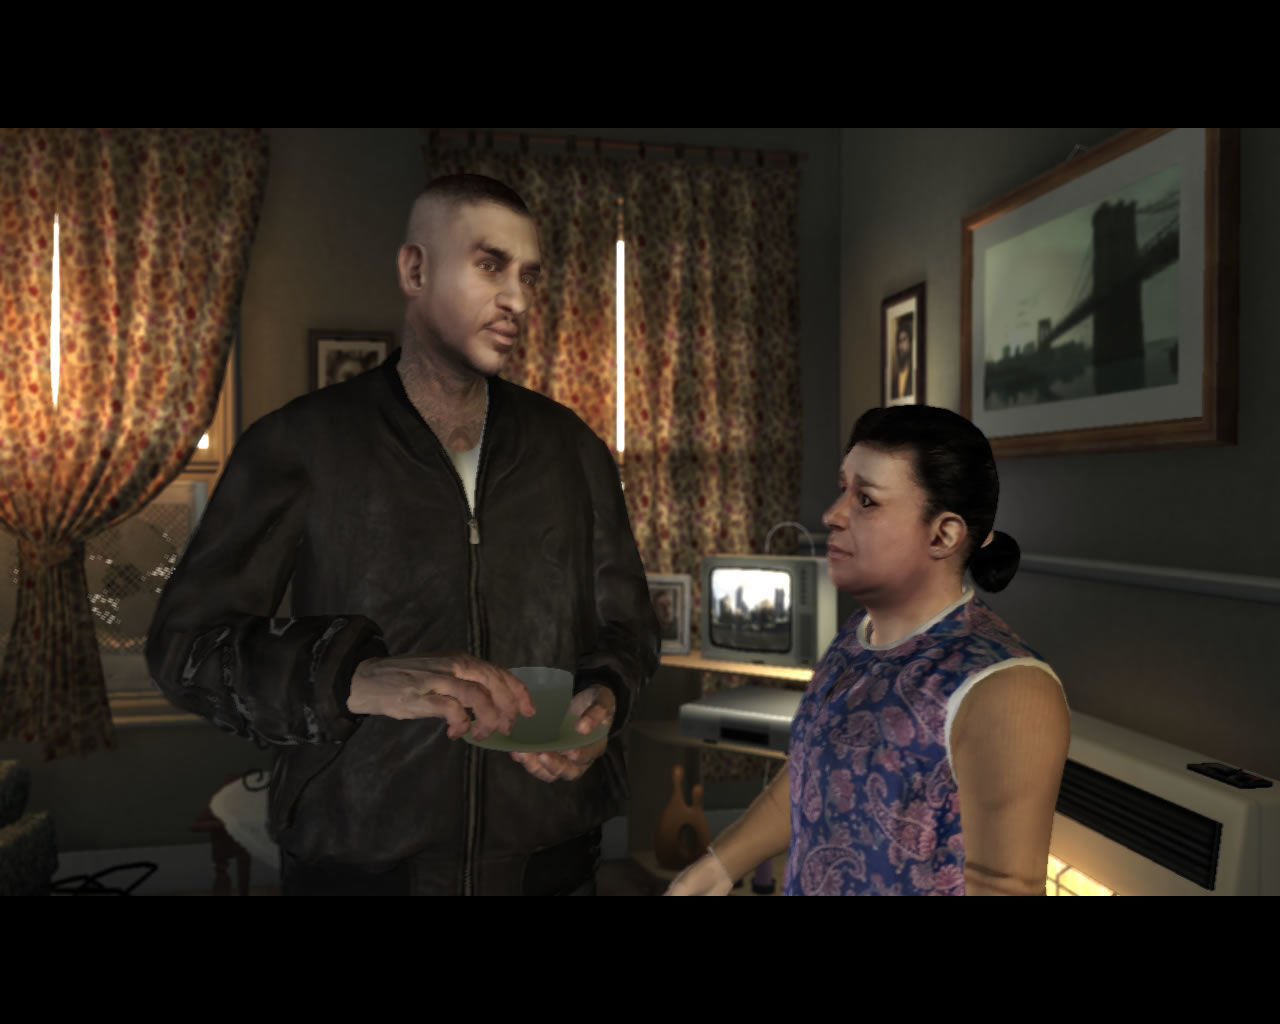 Grand Theft Auto: The Ballad of Gay Tony Windows Meet Luis' mom and an honorable businessman...